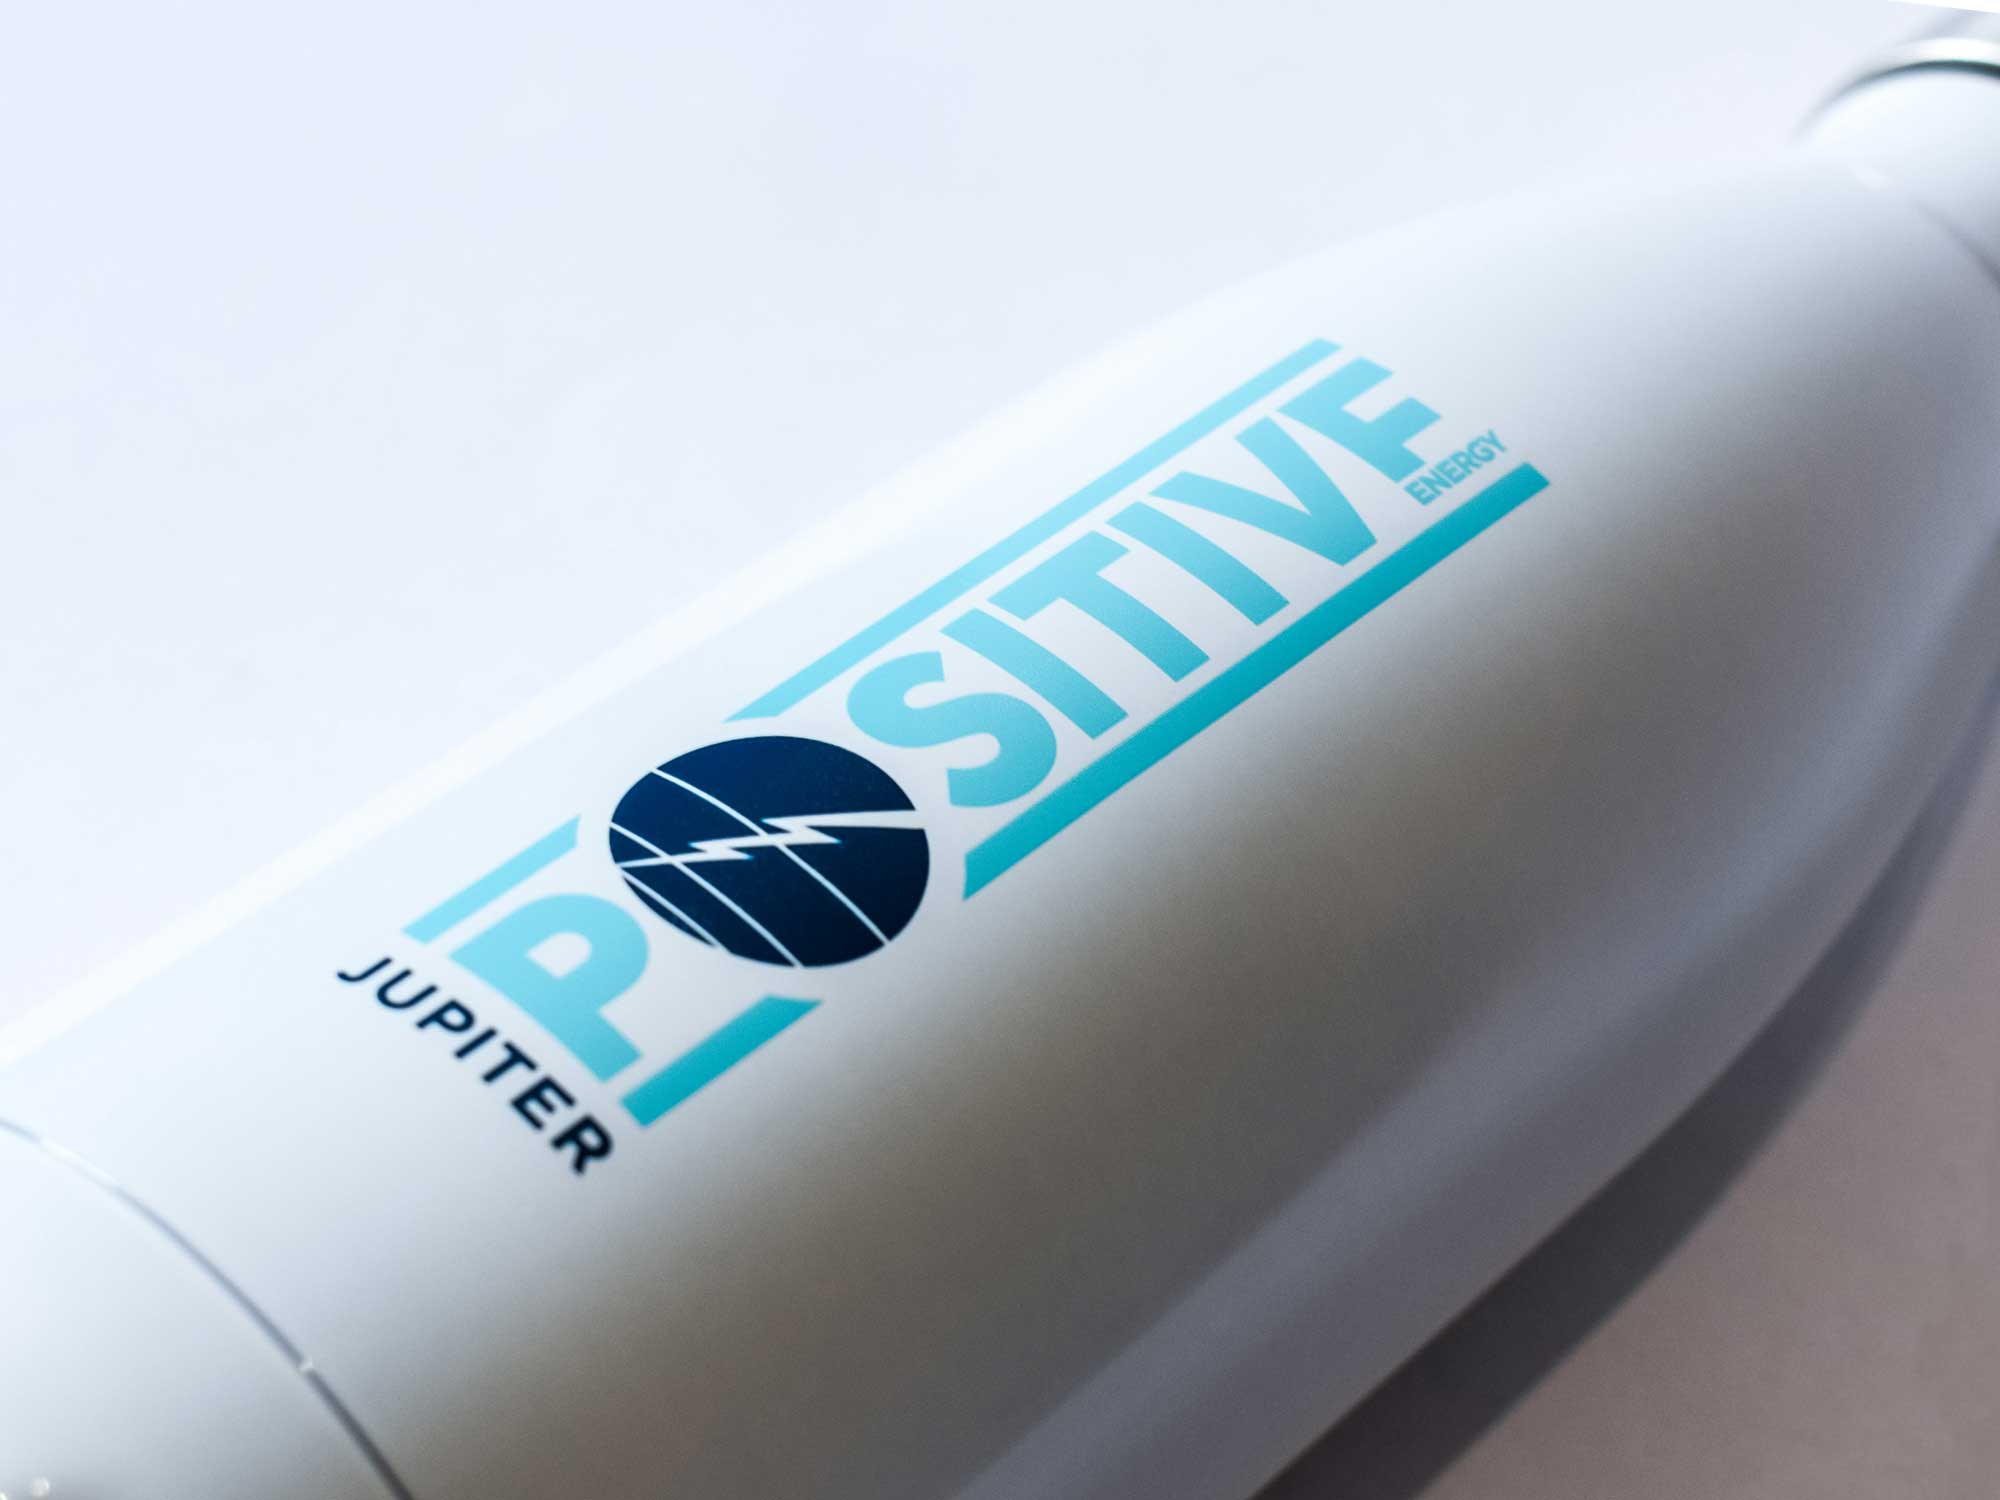 Swell water bottle given as swag for a corporate rebrand of an energy company in Calgary Alberta